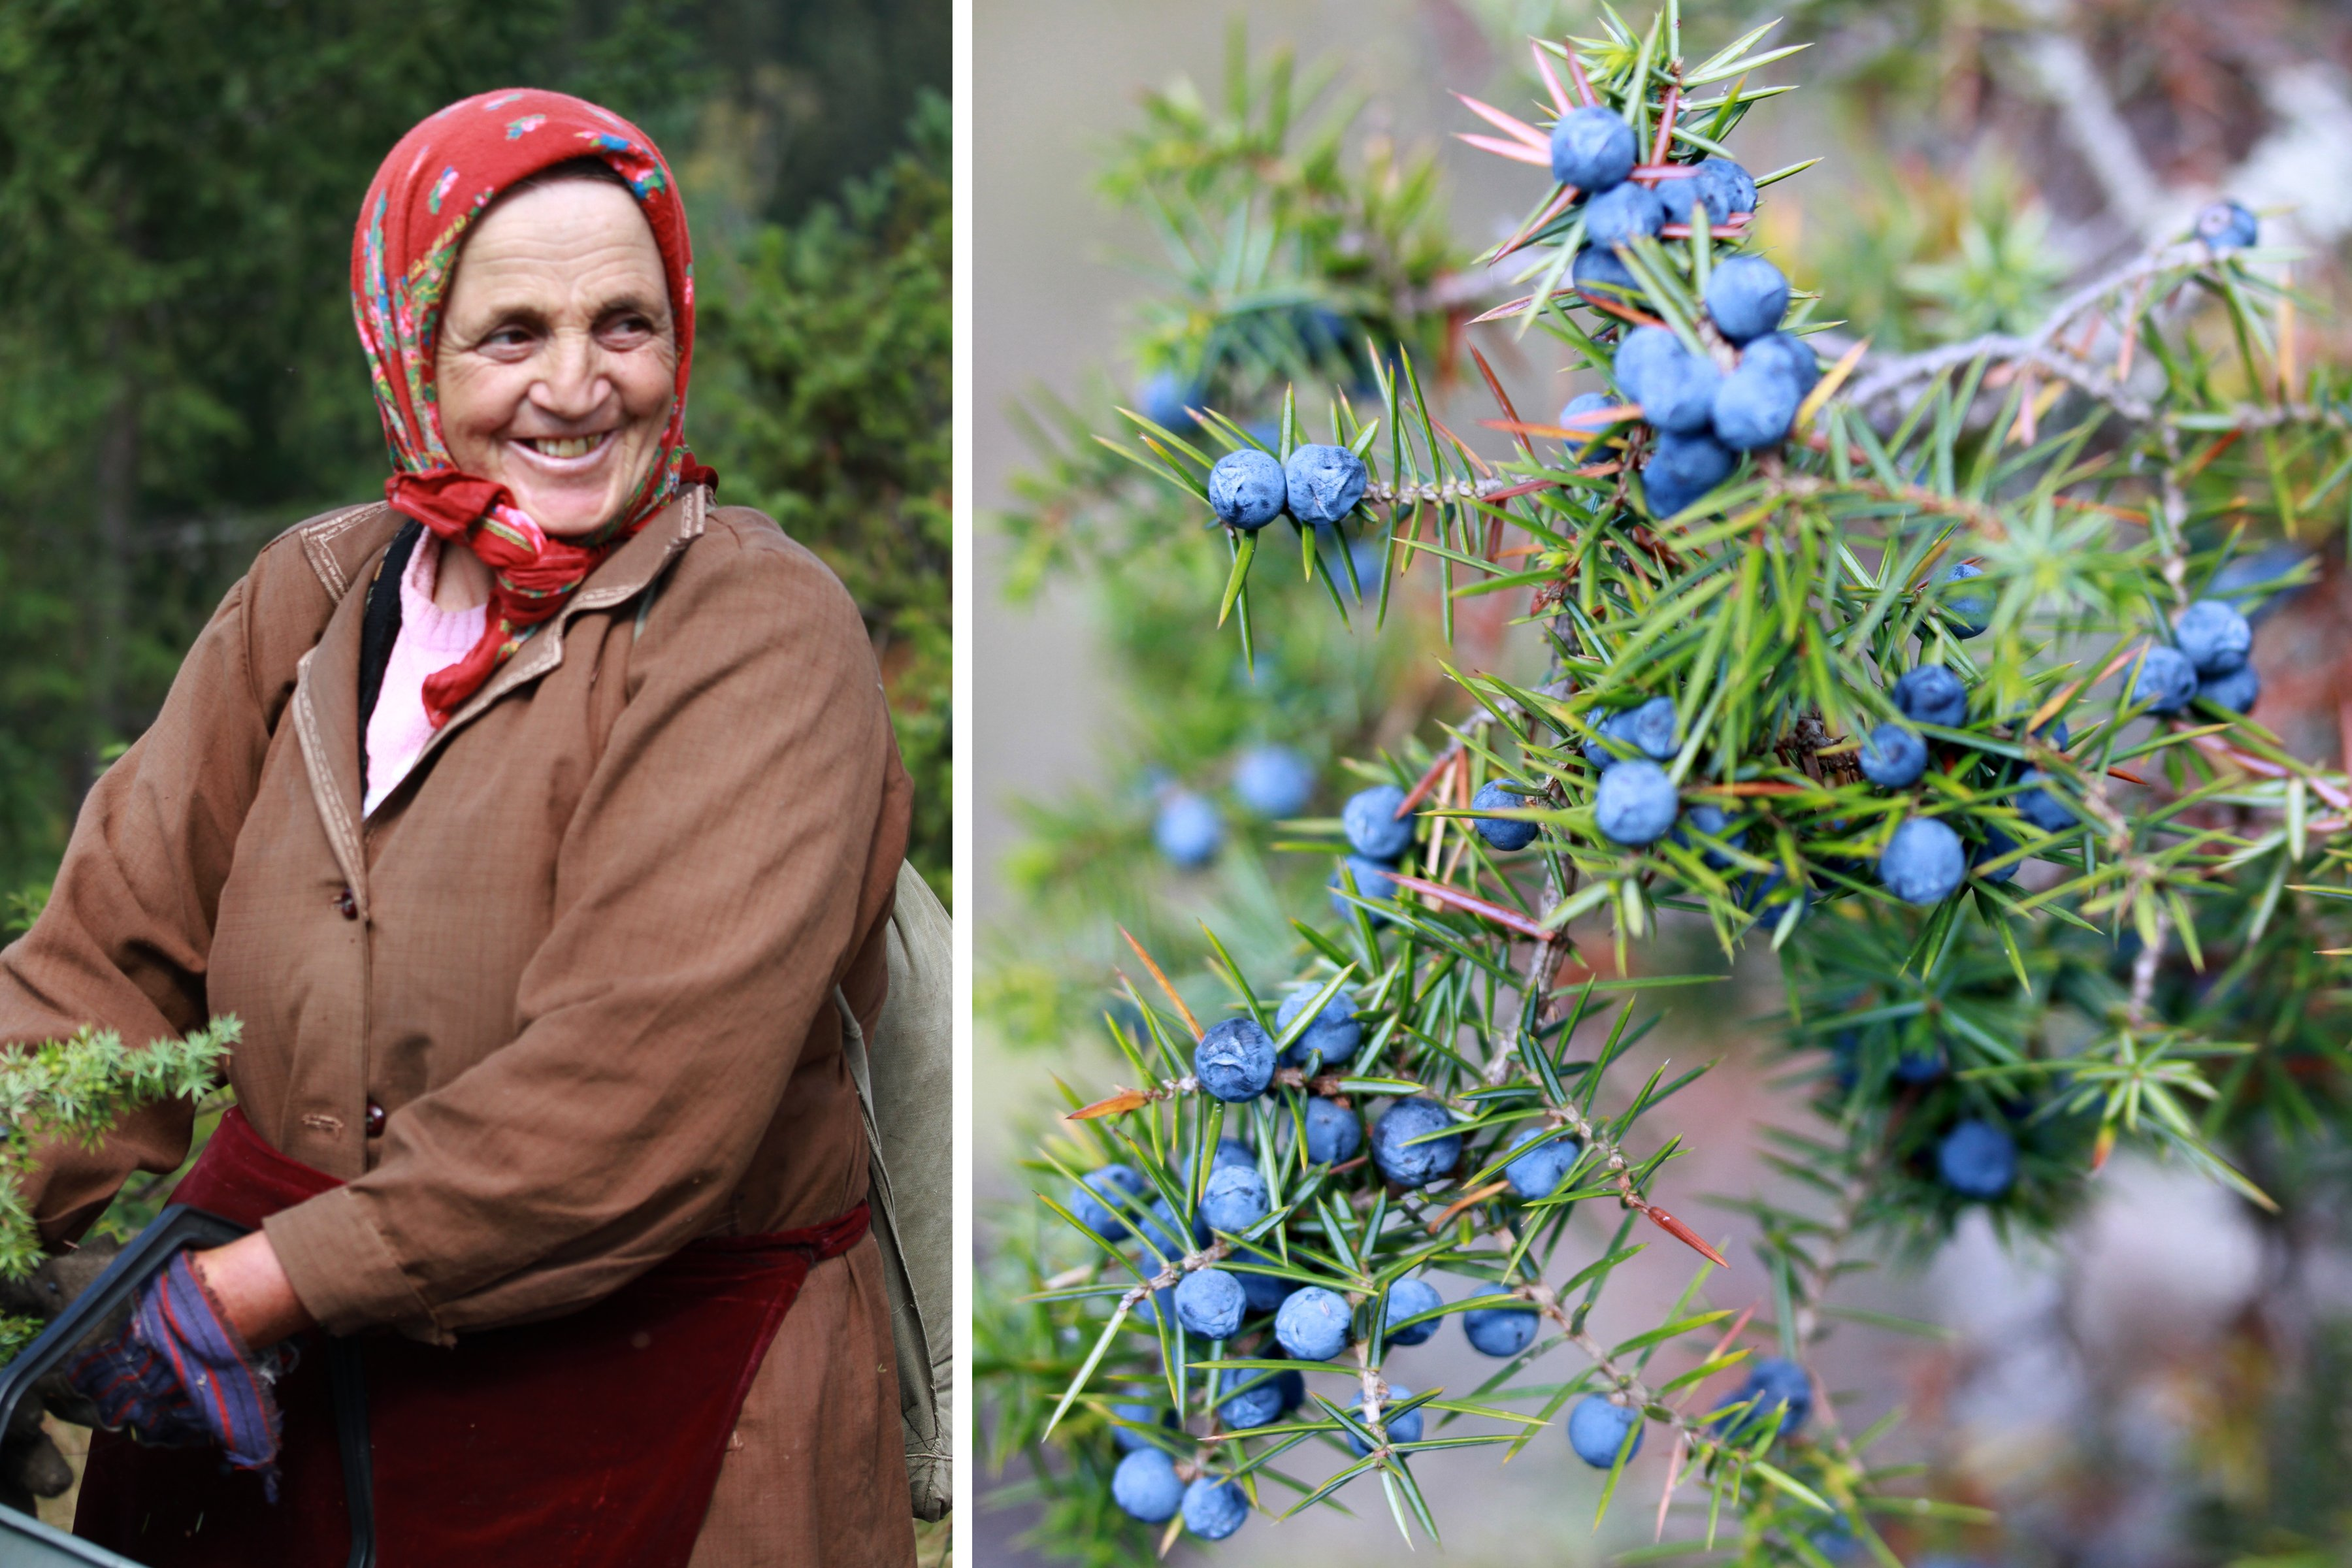 Seasoned hard working elder alongside juniper berry plant.